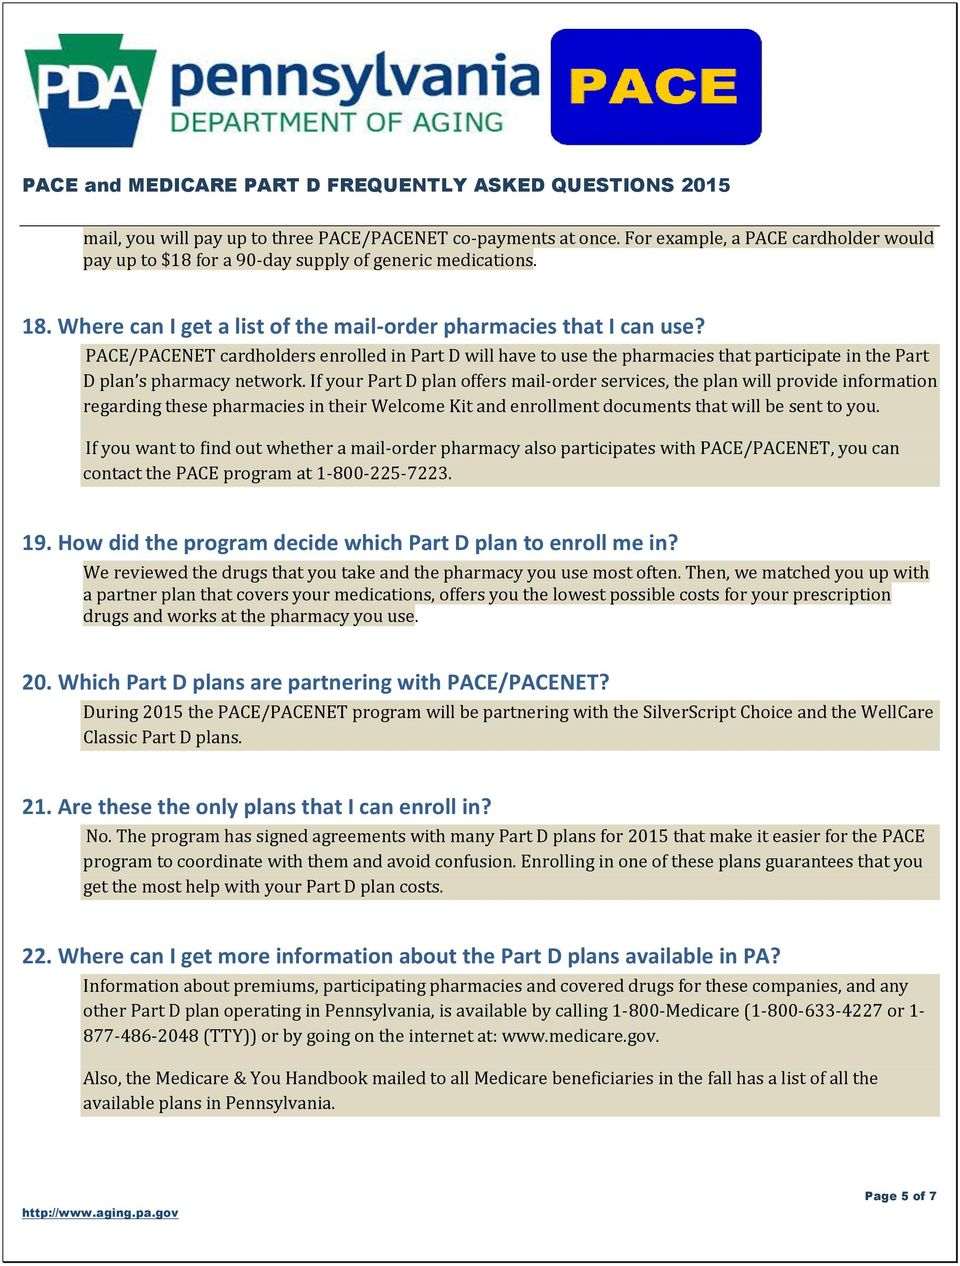 PACE and MEDICARE PART D FREQUENTLY ASKED QUESTIONS PDF